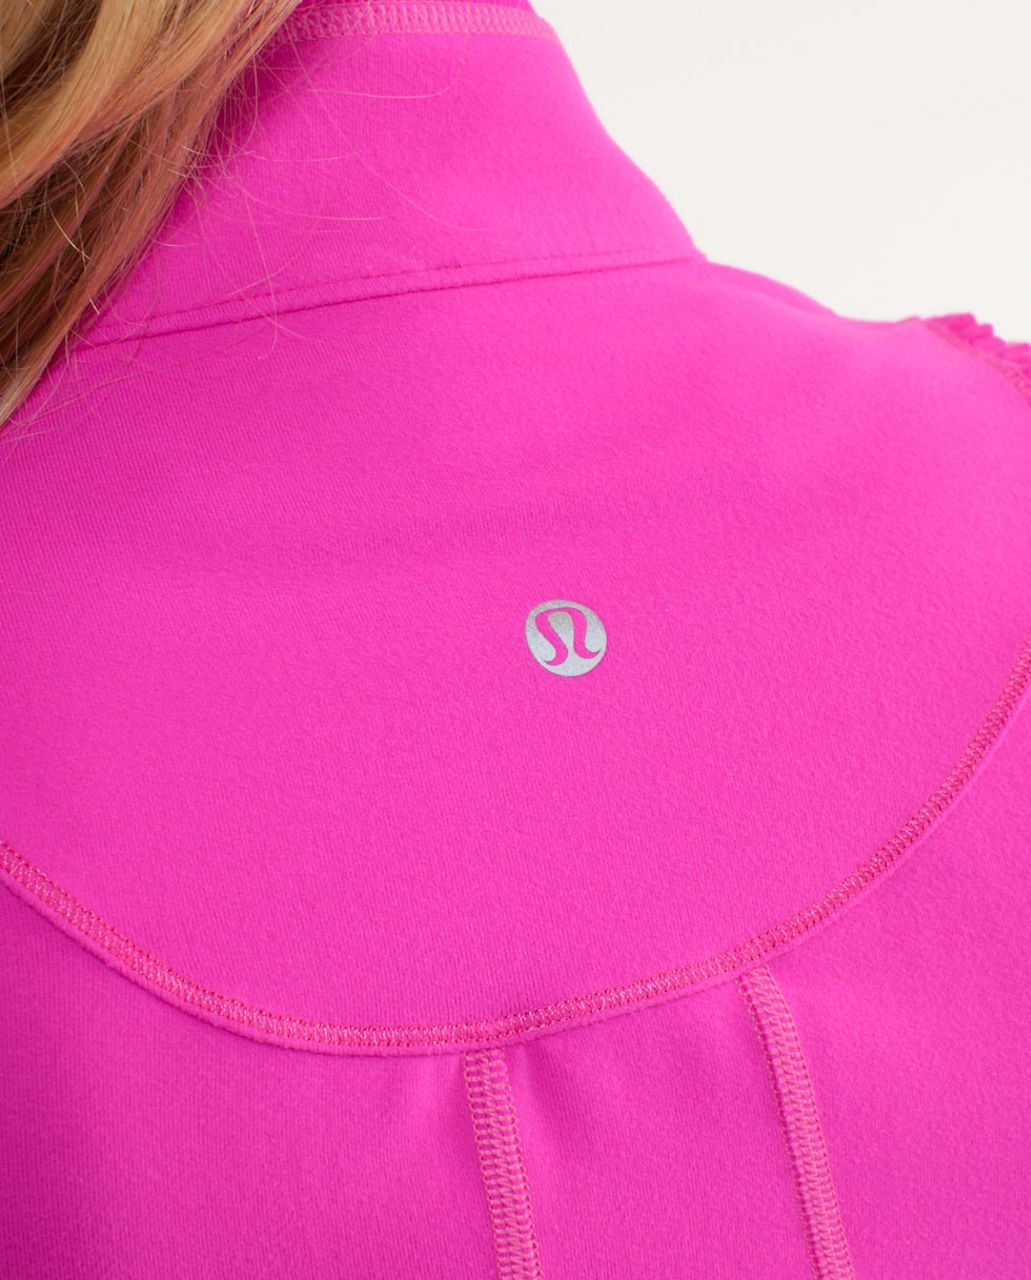 Lululemon Run:  Your Heart Out Pullover - Paris Pink